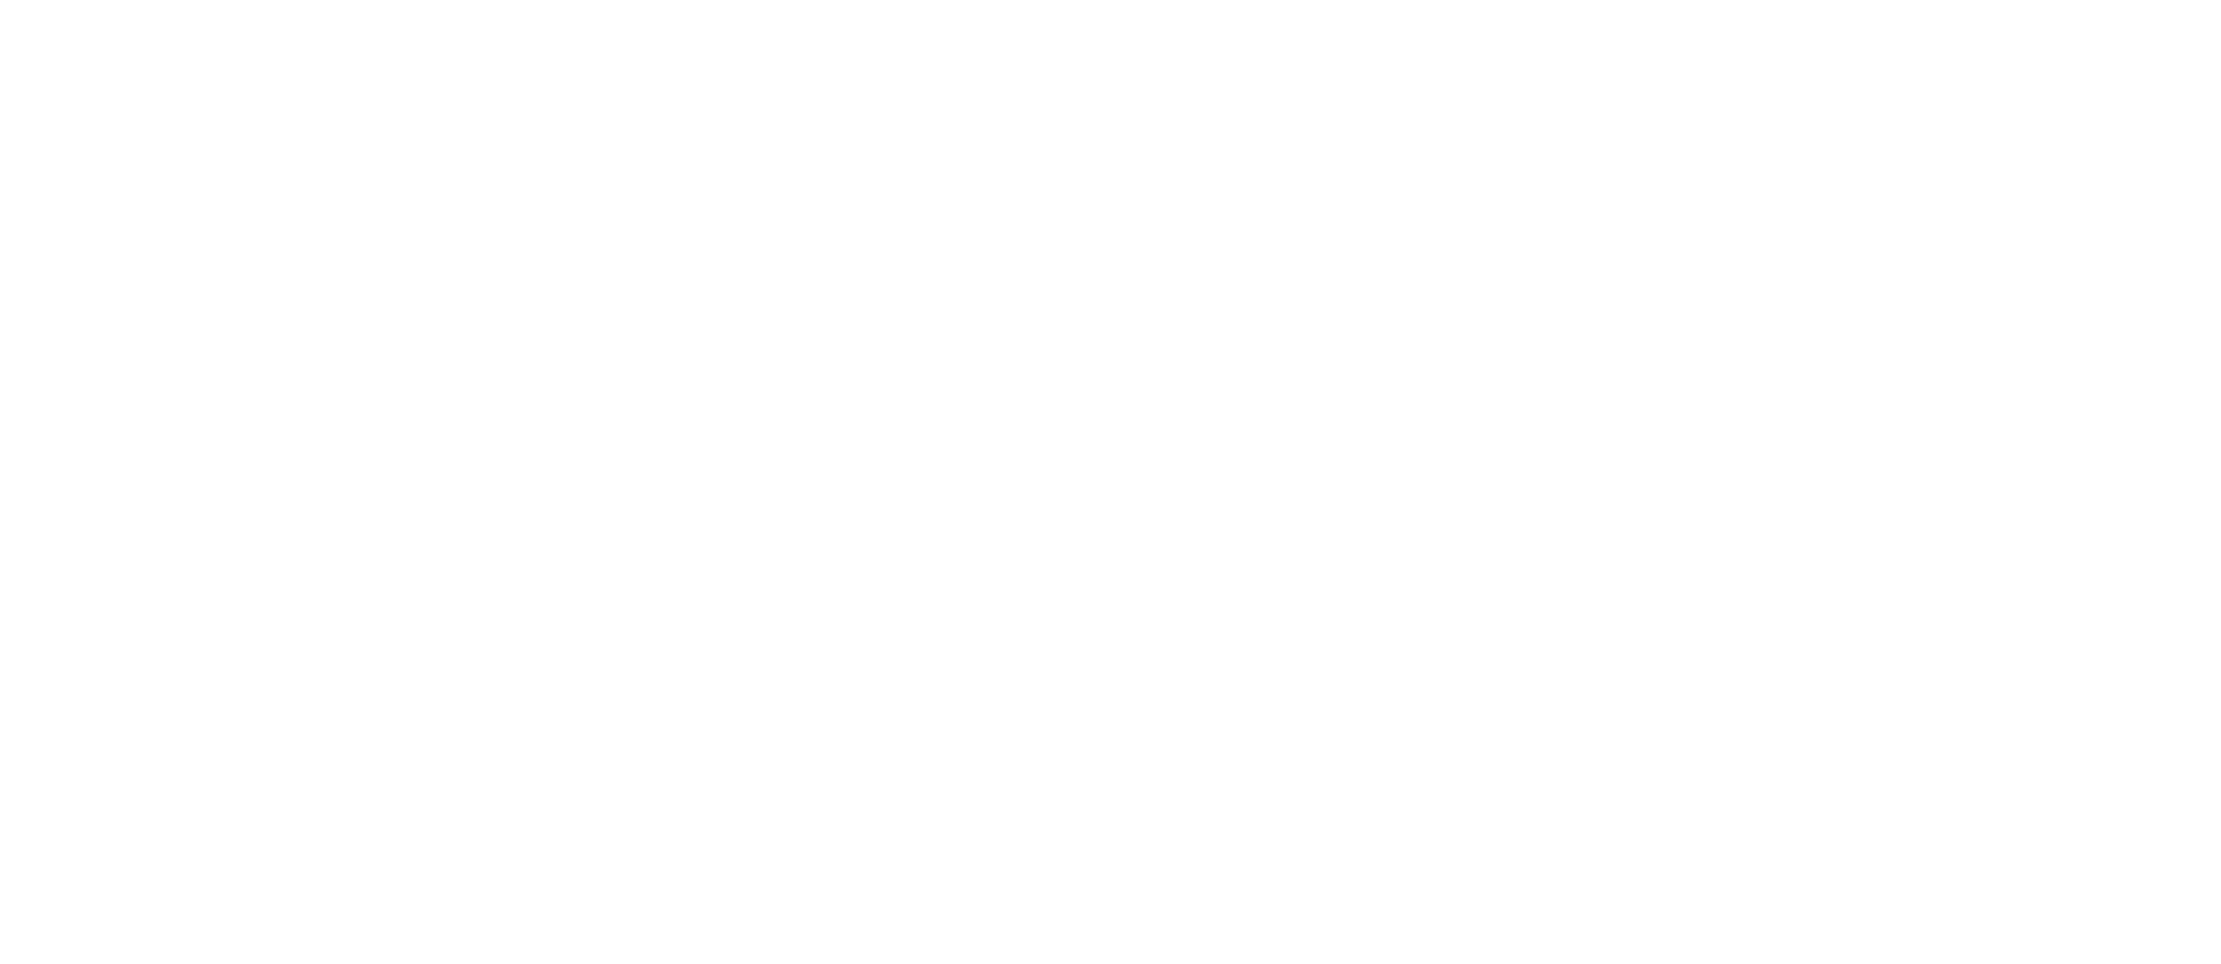 Cosmoprof baltic